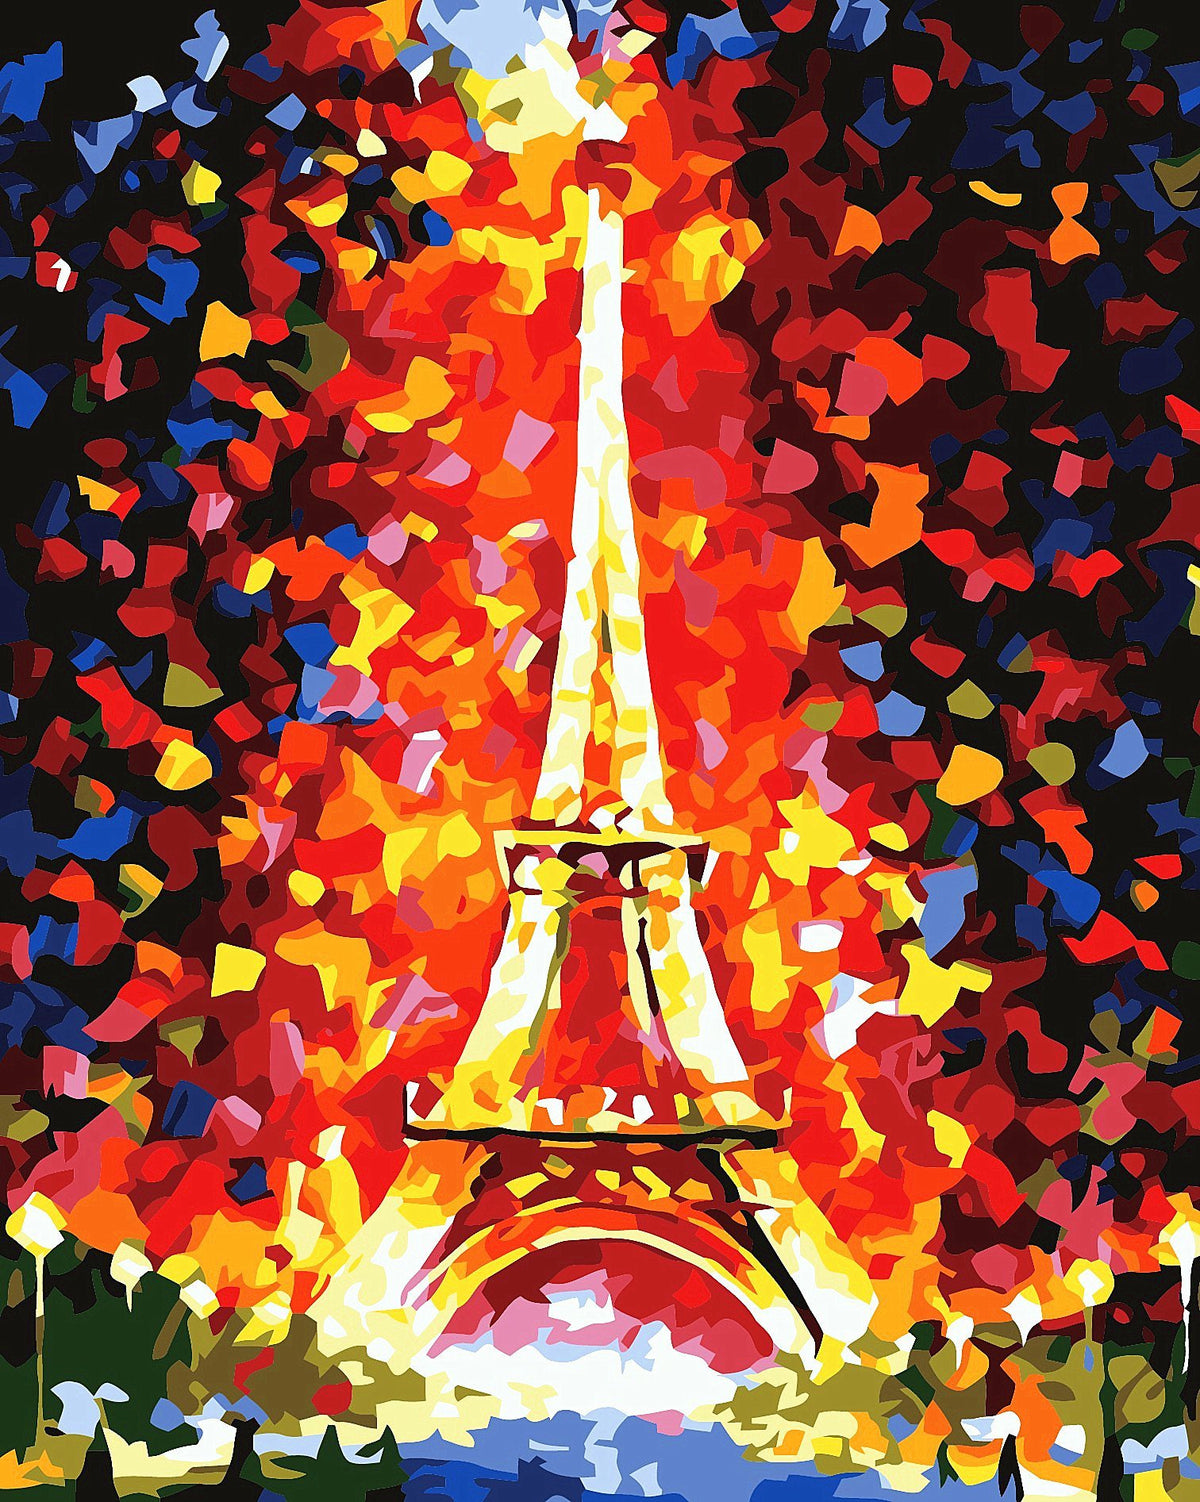 Colorful Watercolor Style Eiffel Tower DIY Paint By Numbers Kits Creative Wall Art DIY Handmade Gift Home Decor